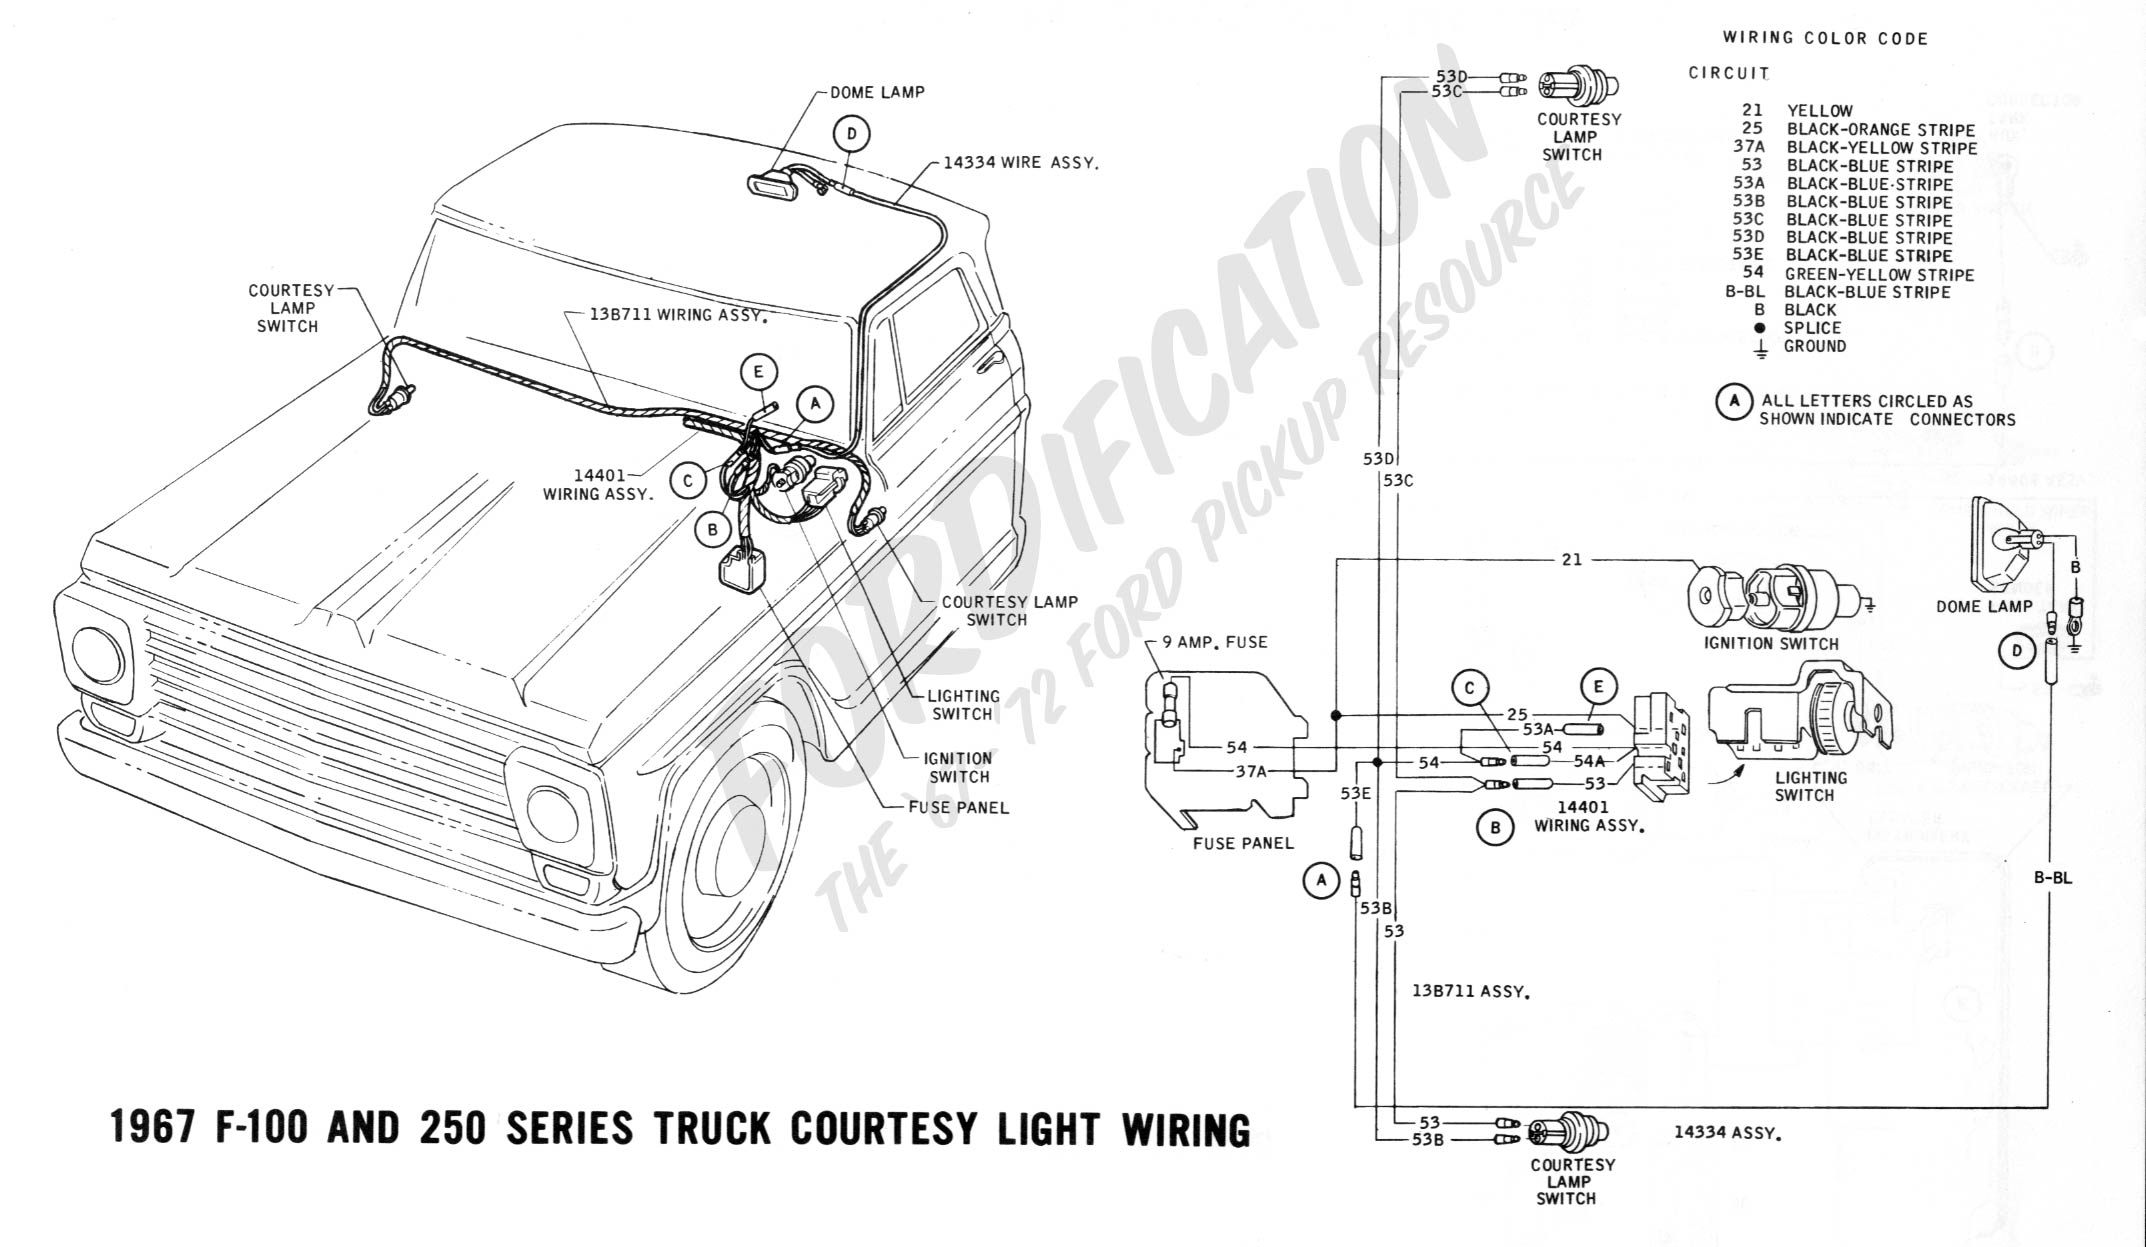 wiring 1967courtesylight ford truck technical drawings and schematics section h wiring ford truck wiring diagrams at reclaimingppi.co